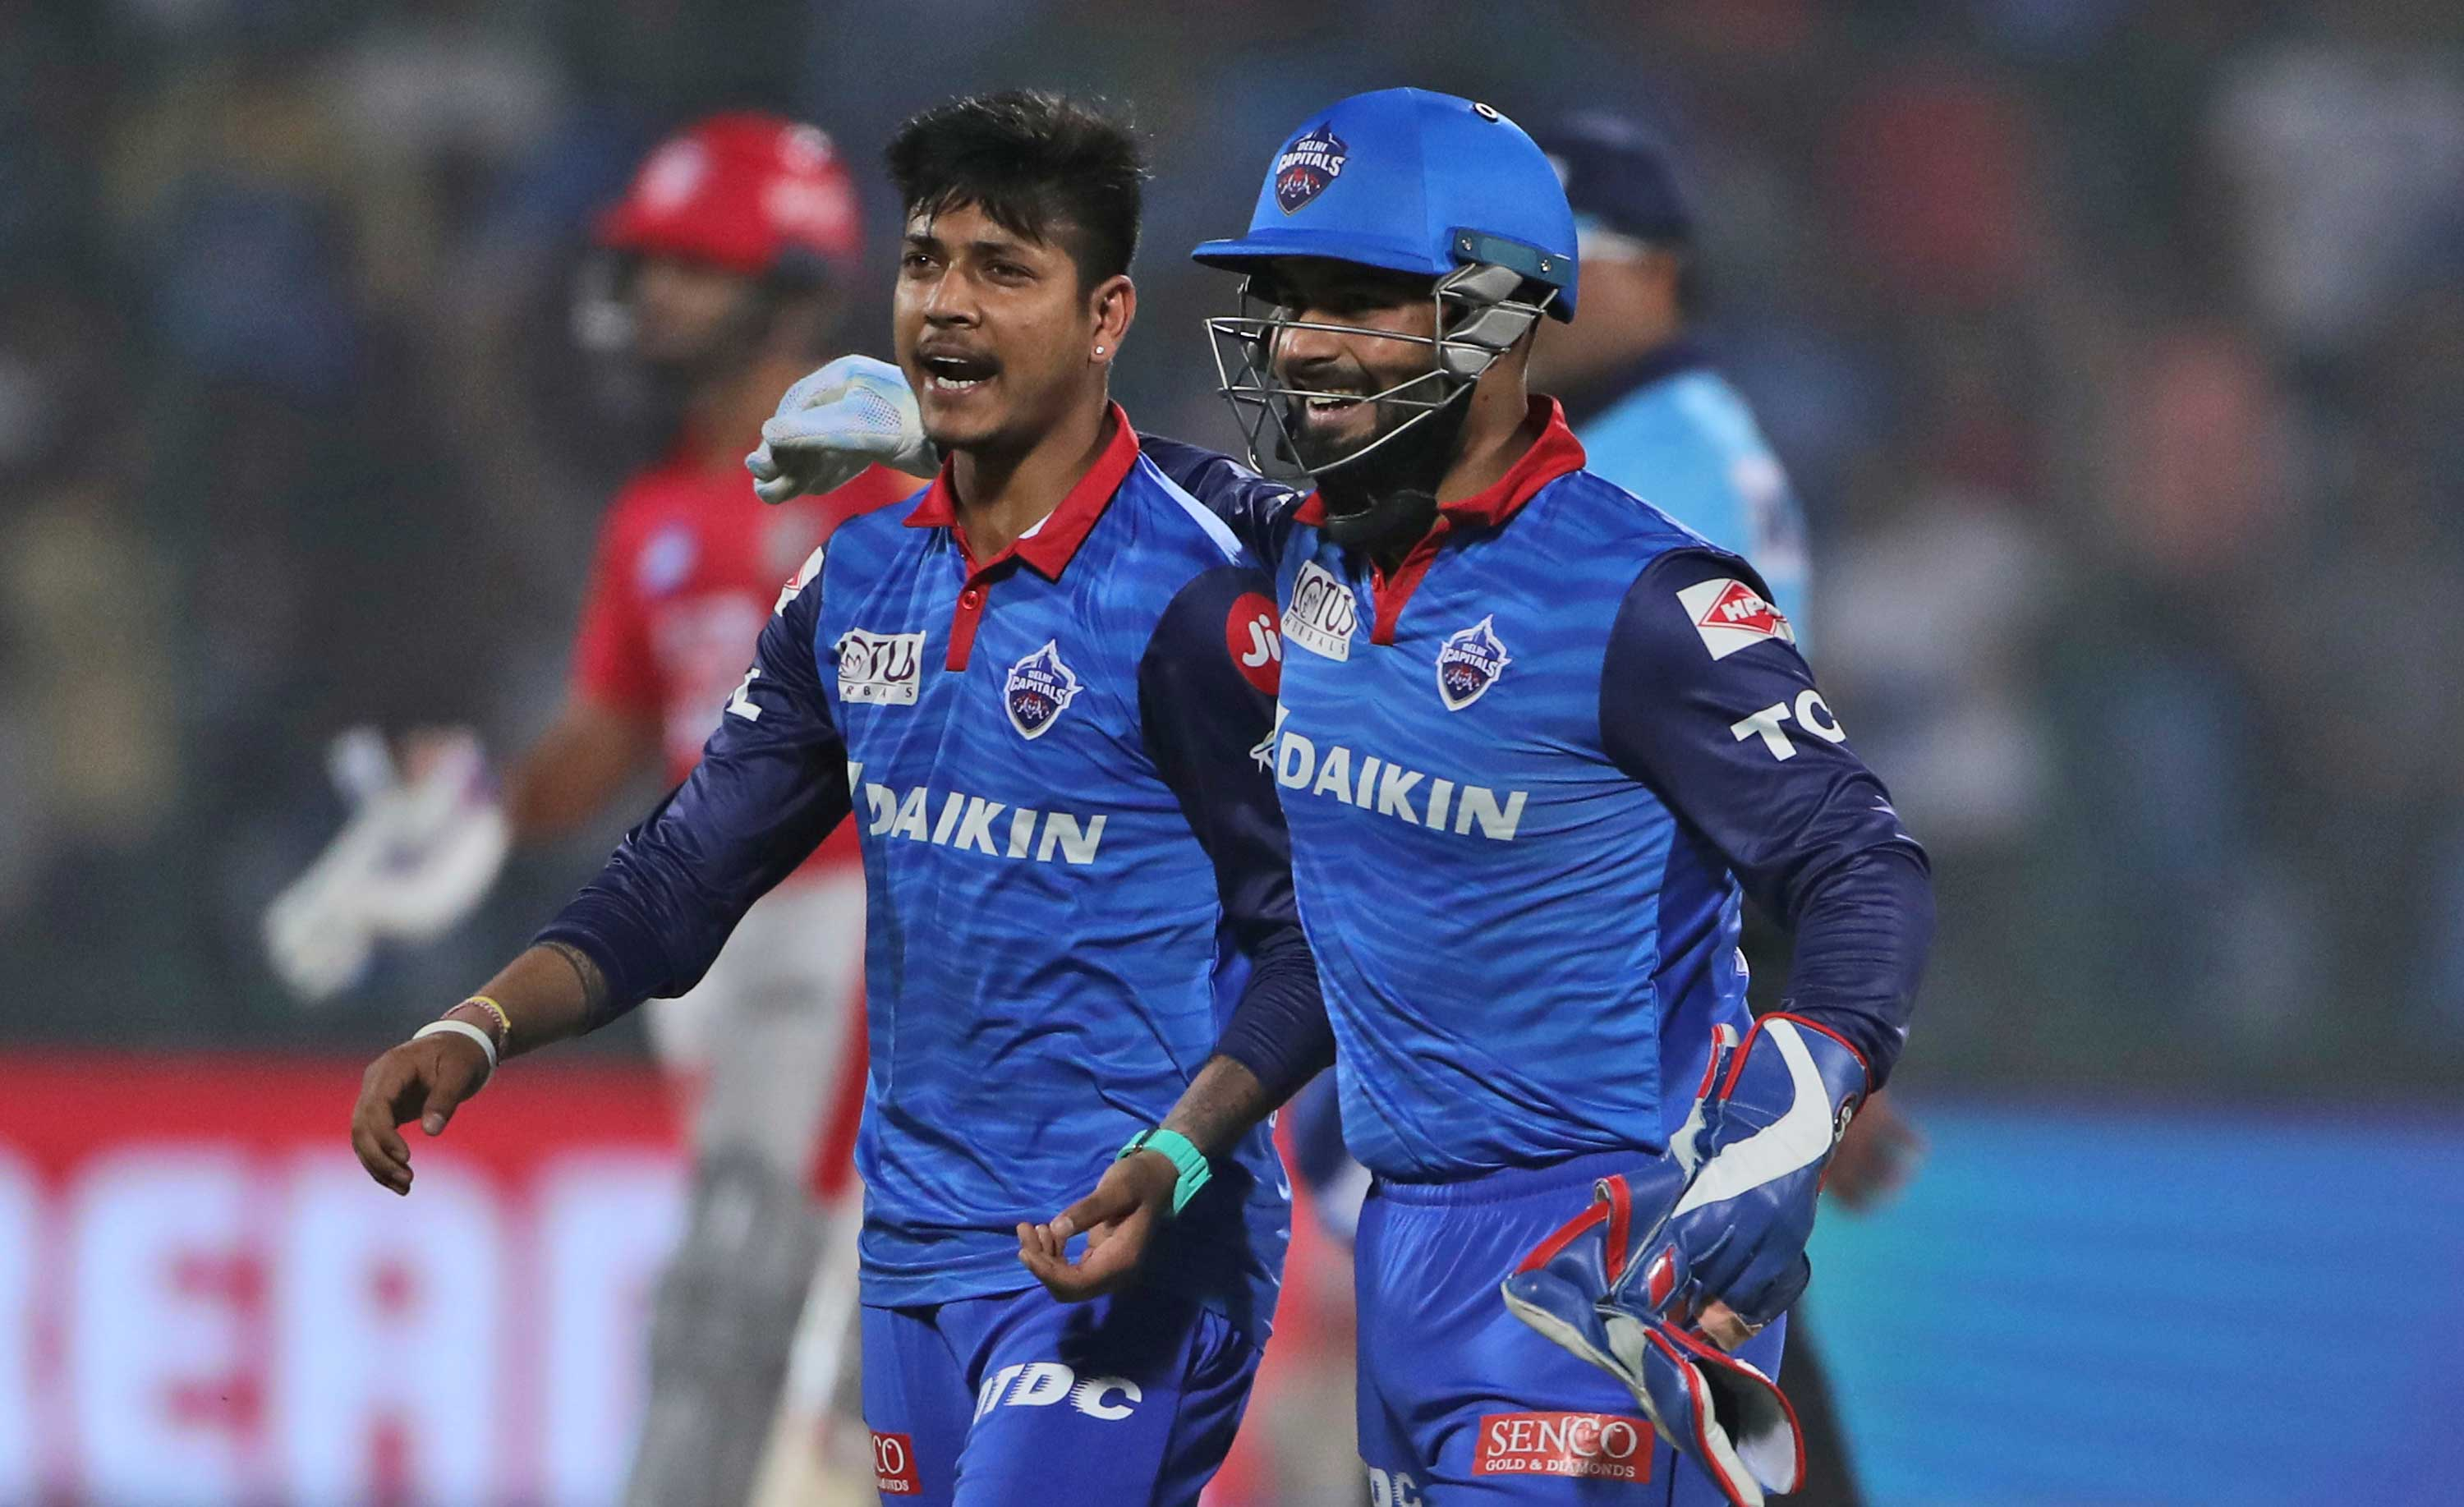 Sandeep Lamichhane (left) and Rishabh Pant celebrate the dismissal of Kings XI Punjab batsman Chris Gayle during the cricket match in New Delhi, on April 20, 2019.